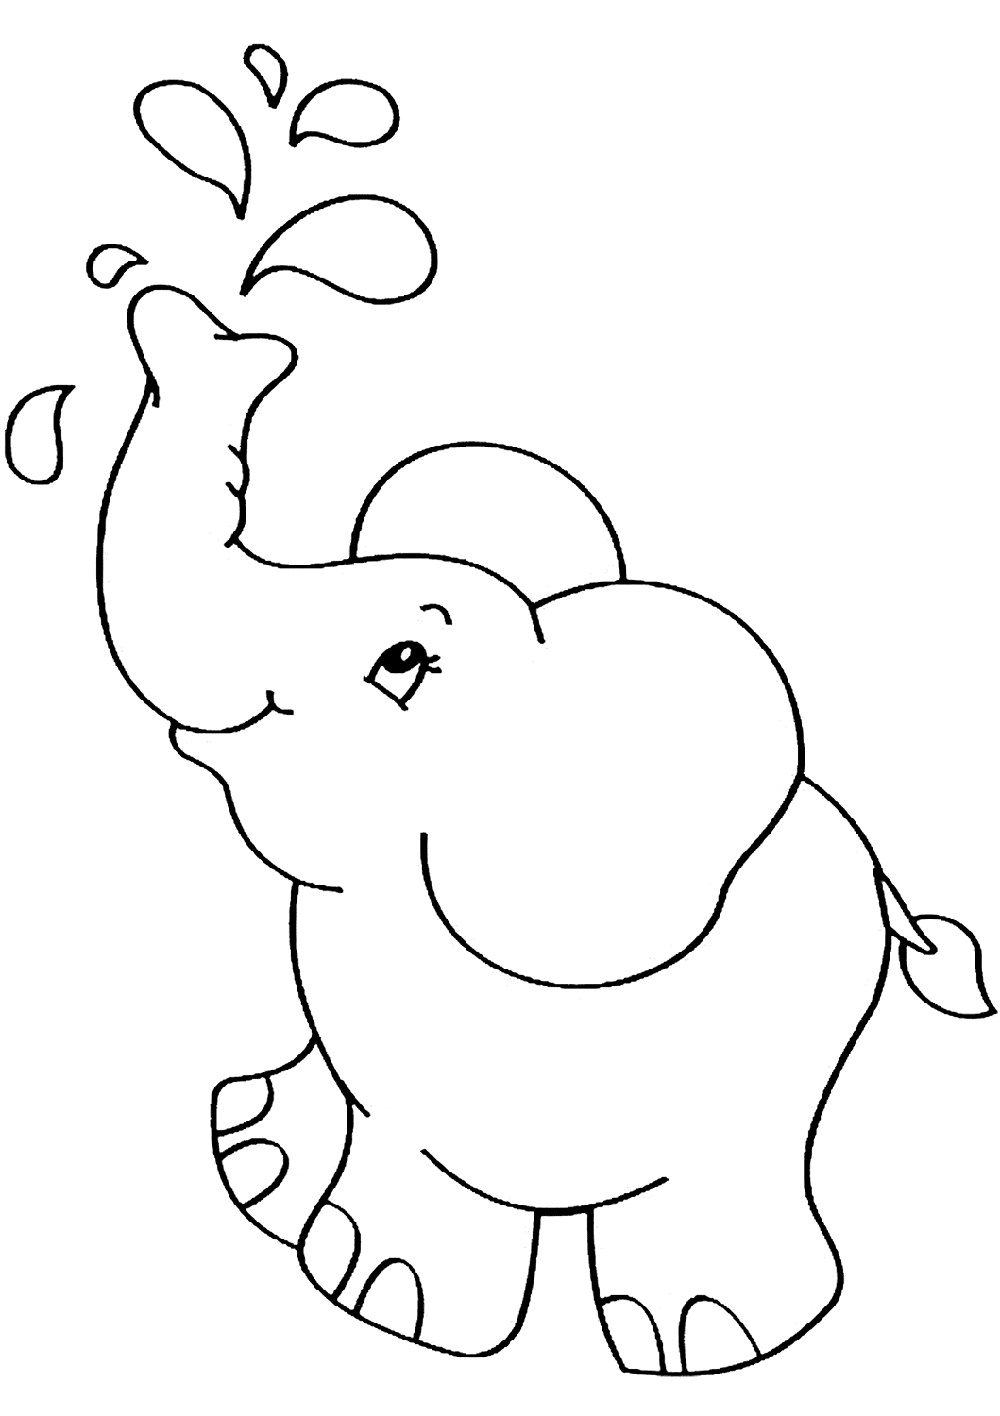 Baby Elephant Coloring Pages For Kindergarten Elephant Coloring Page Coloring Pages Animal Coloring Pages